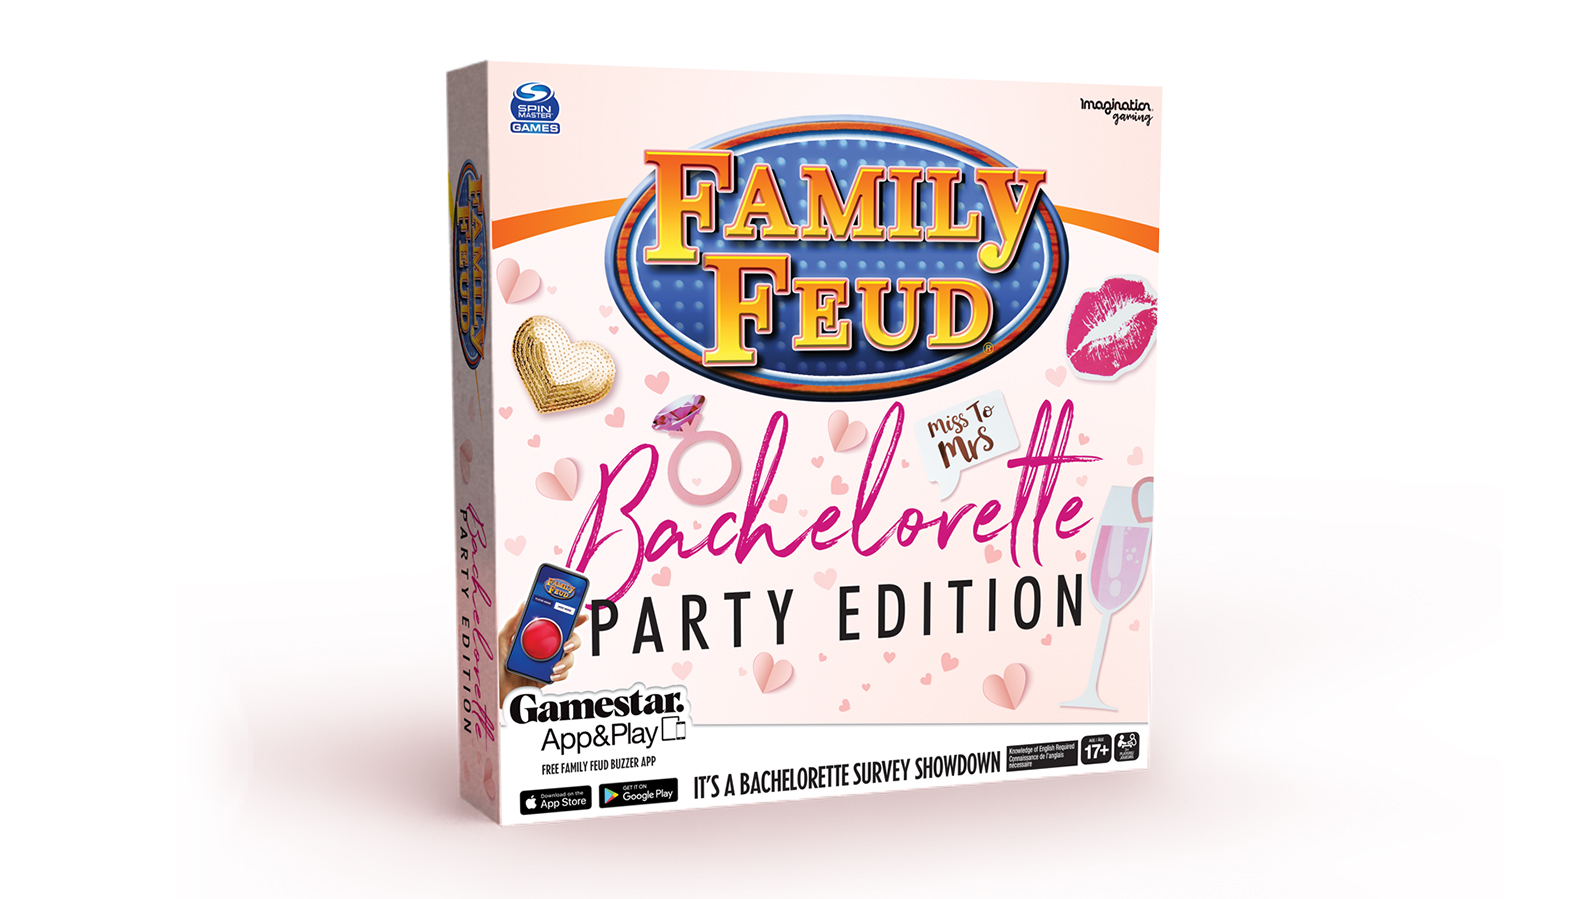 Family Feud Game Bachelorette Edition